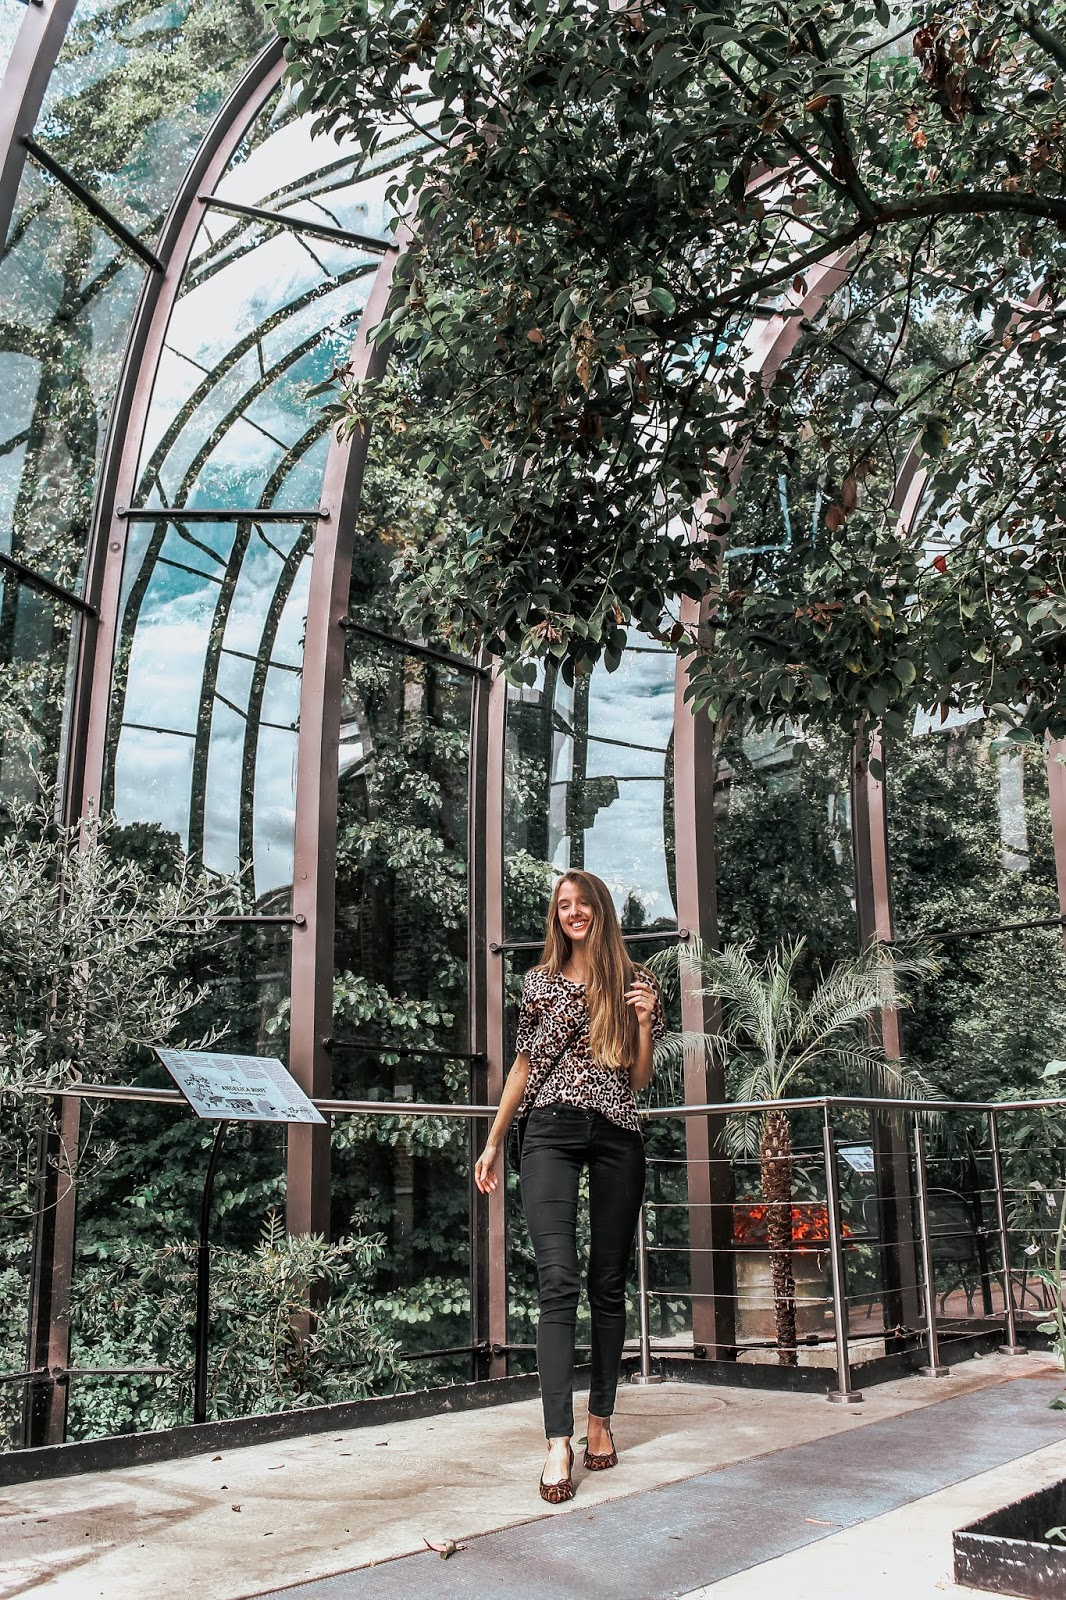 Bombay Sapphire Distillery Travel Blog Review 2018